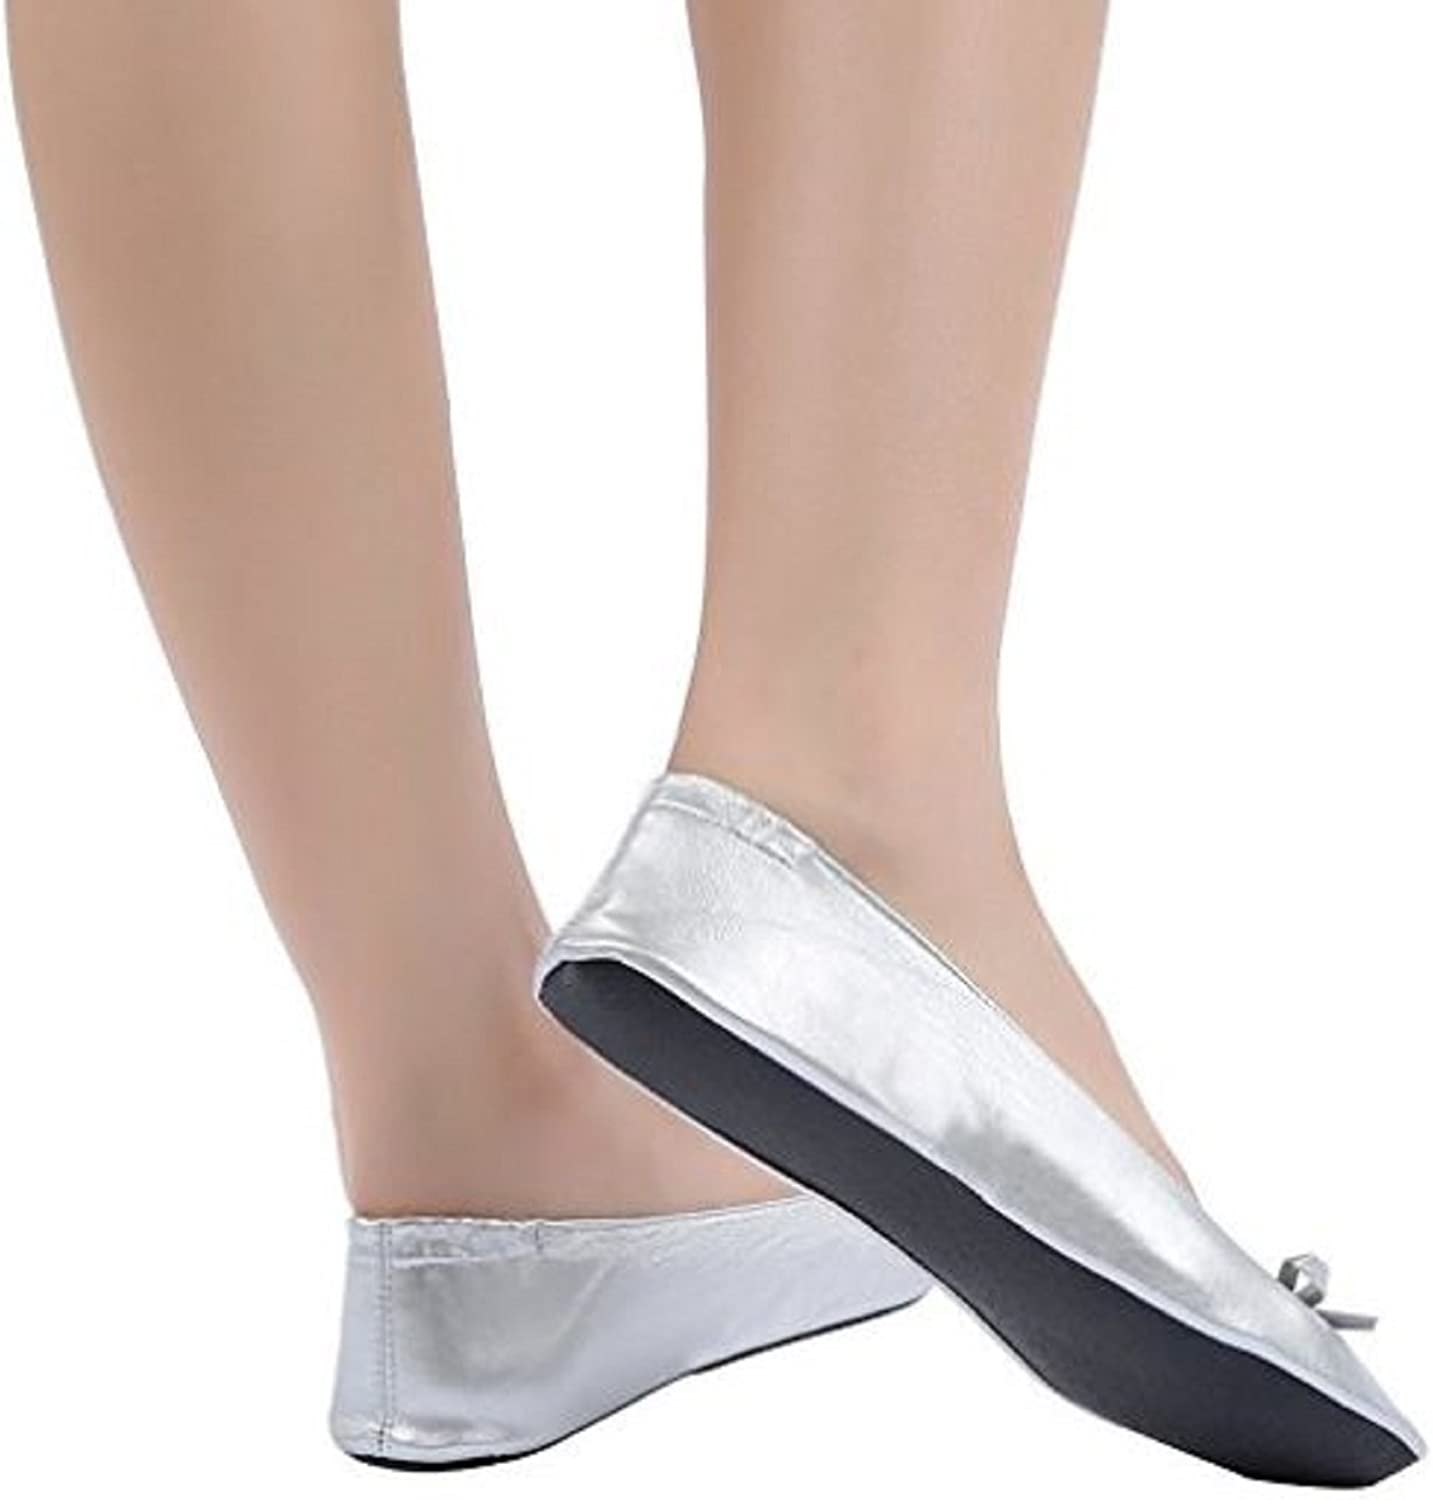 Fancy Foldable Flats - Zapatos de plegables de ballet con bolsa ...